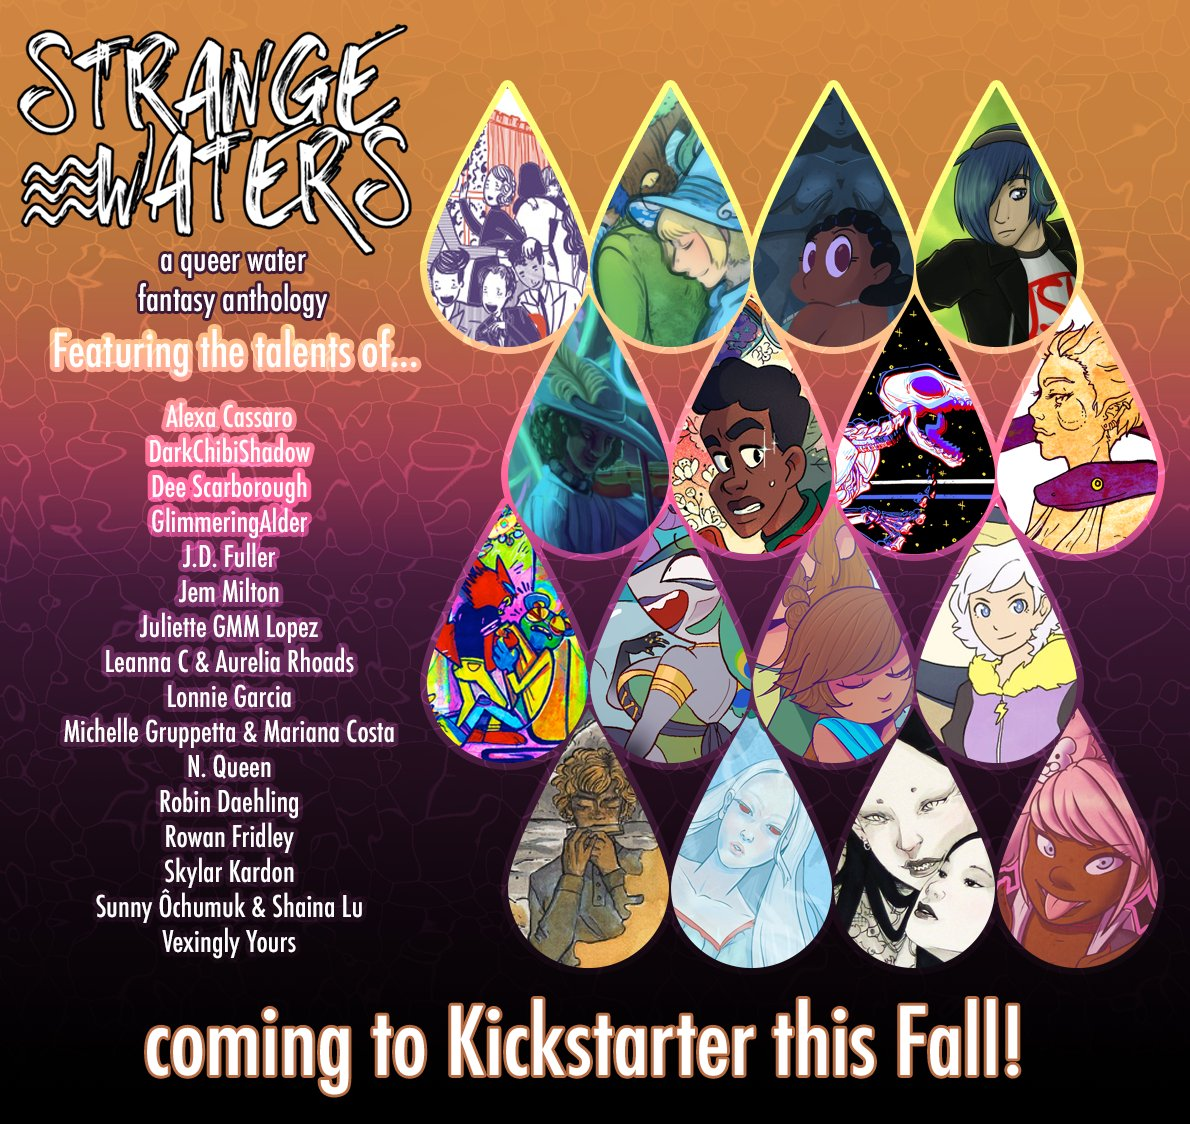 Hello #PrideBoost! Are you on the hunt for some comics by queer artists? Strange Waters, a queer water fantasy comic anthology, will be launching on Kickstarter in the Fall!